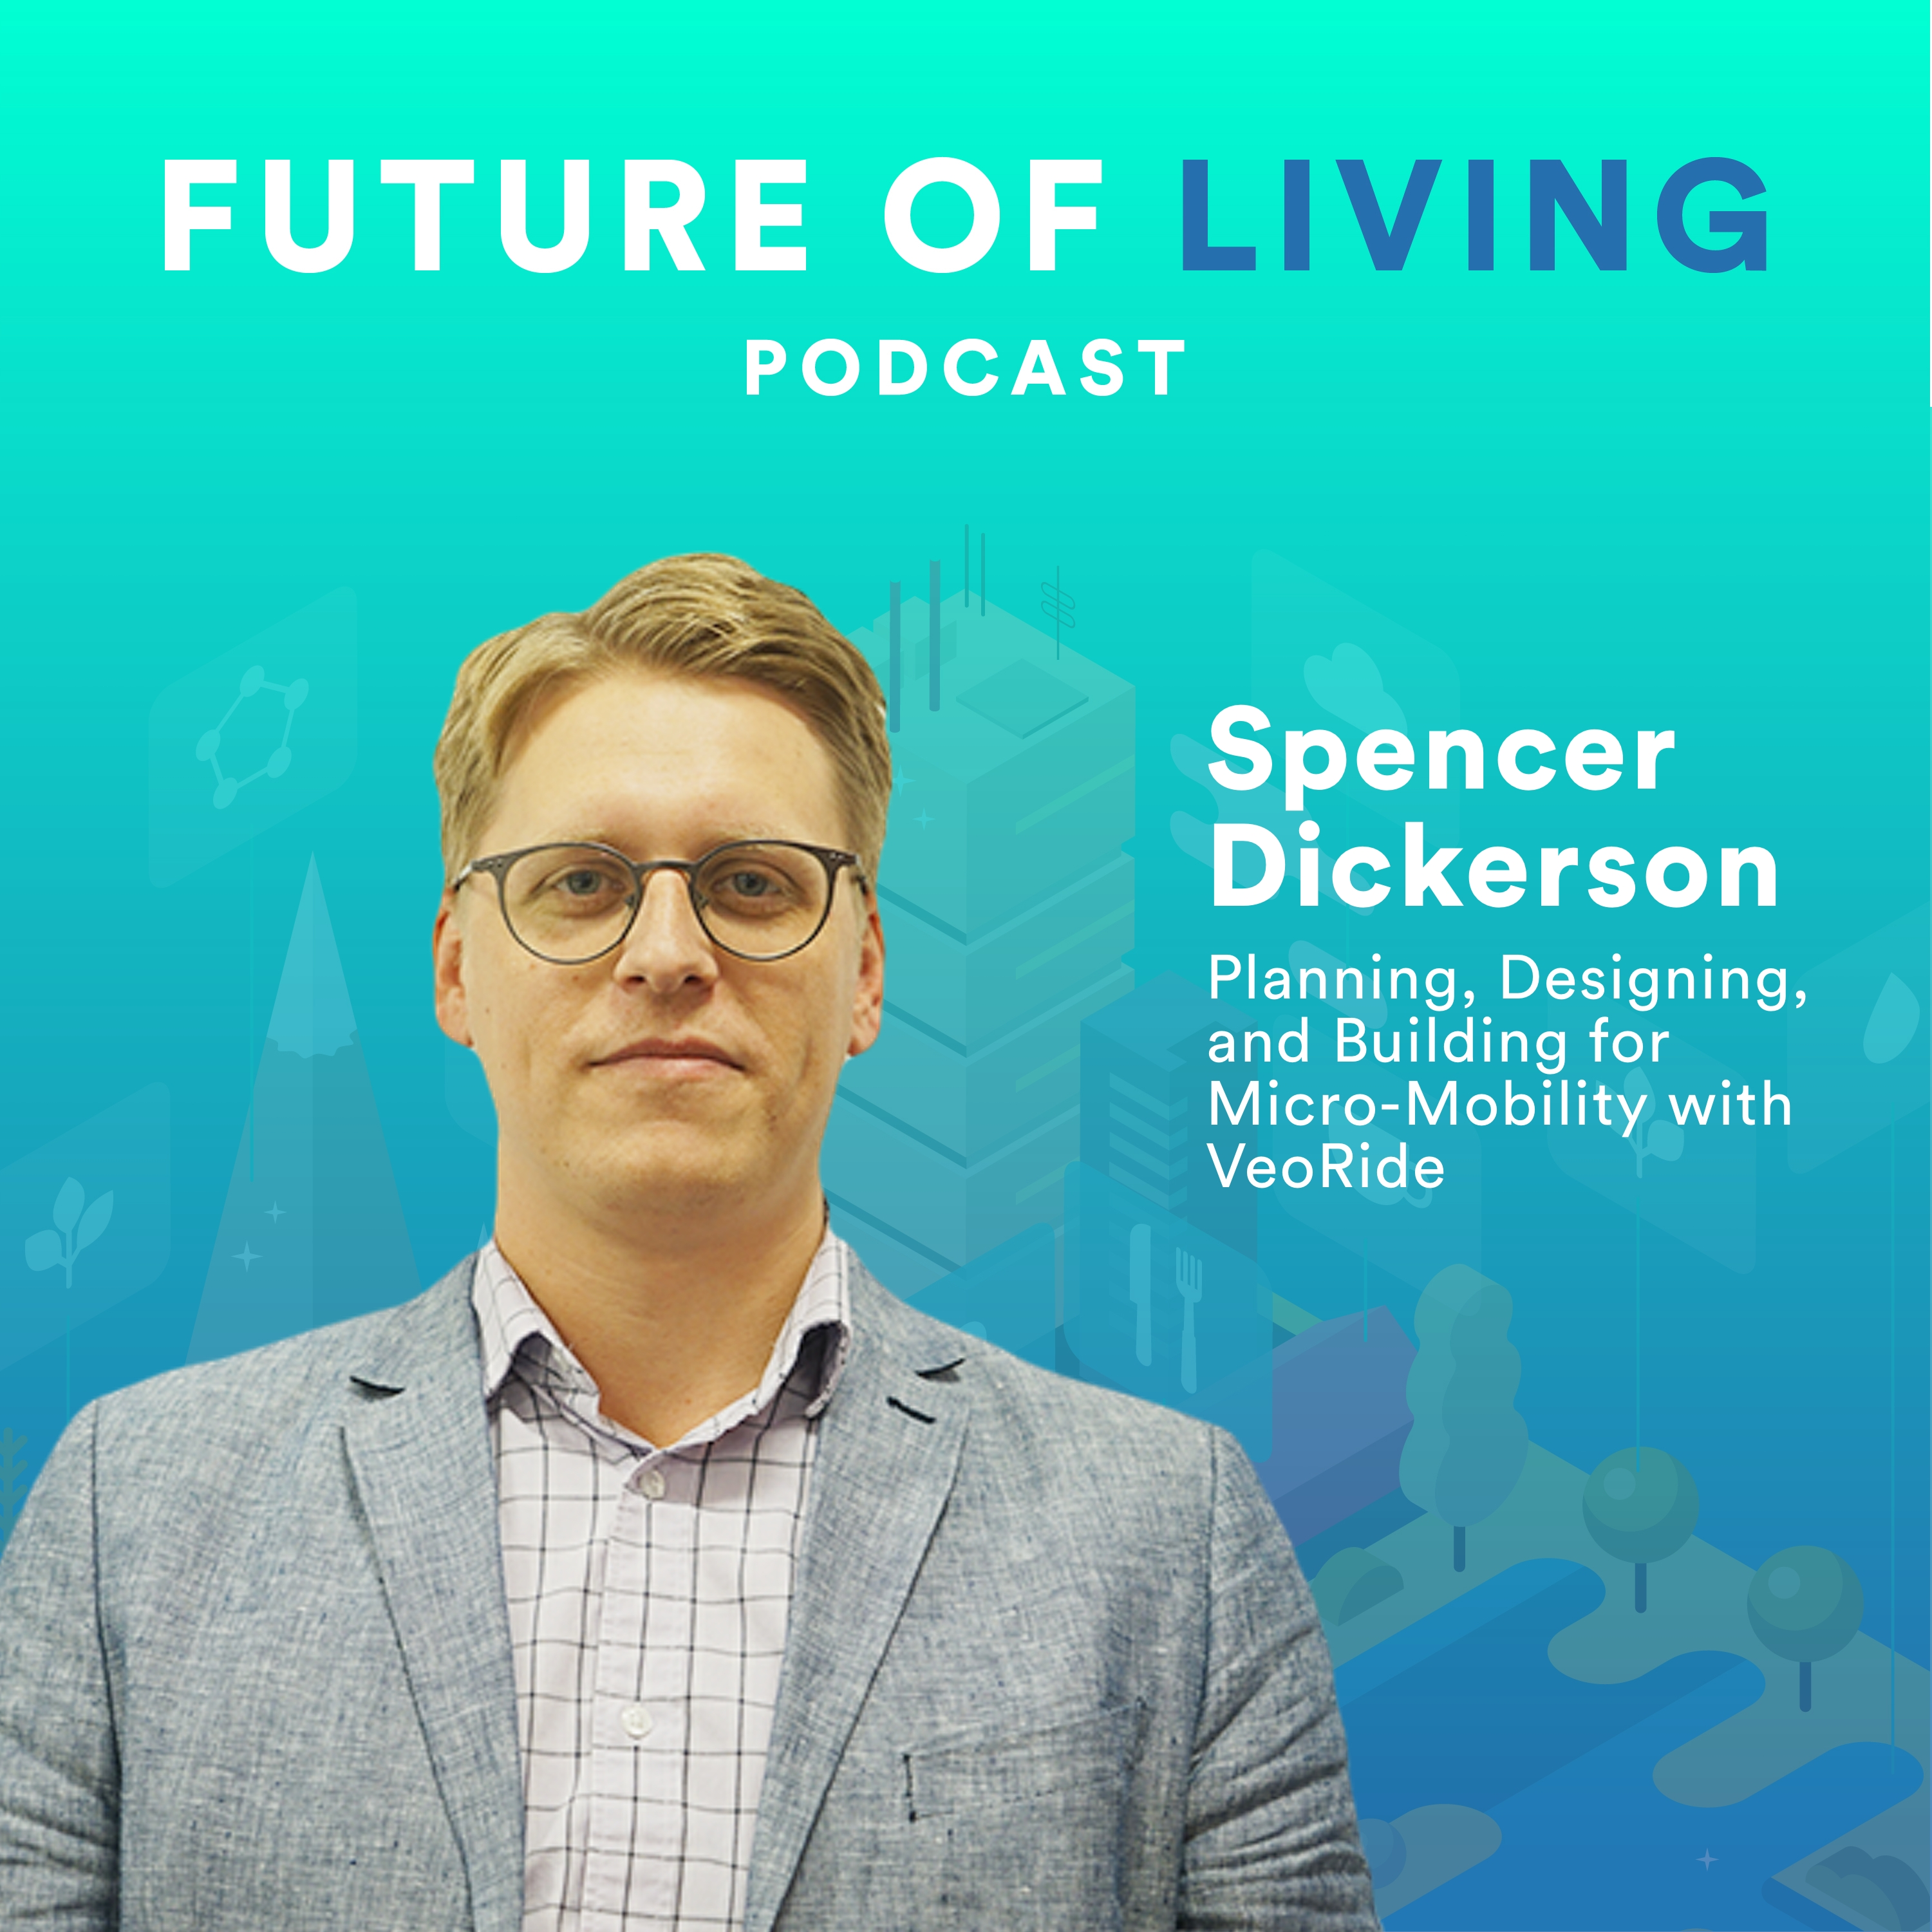 Spencer Dickerson on Planning, Designing, and Building for Residential Micromobility